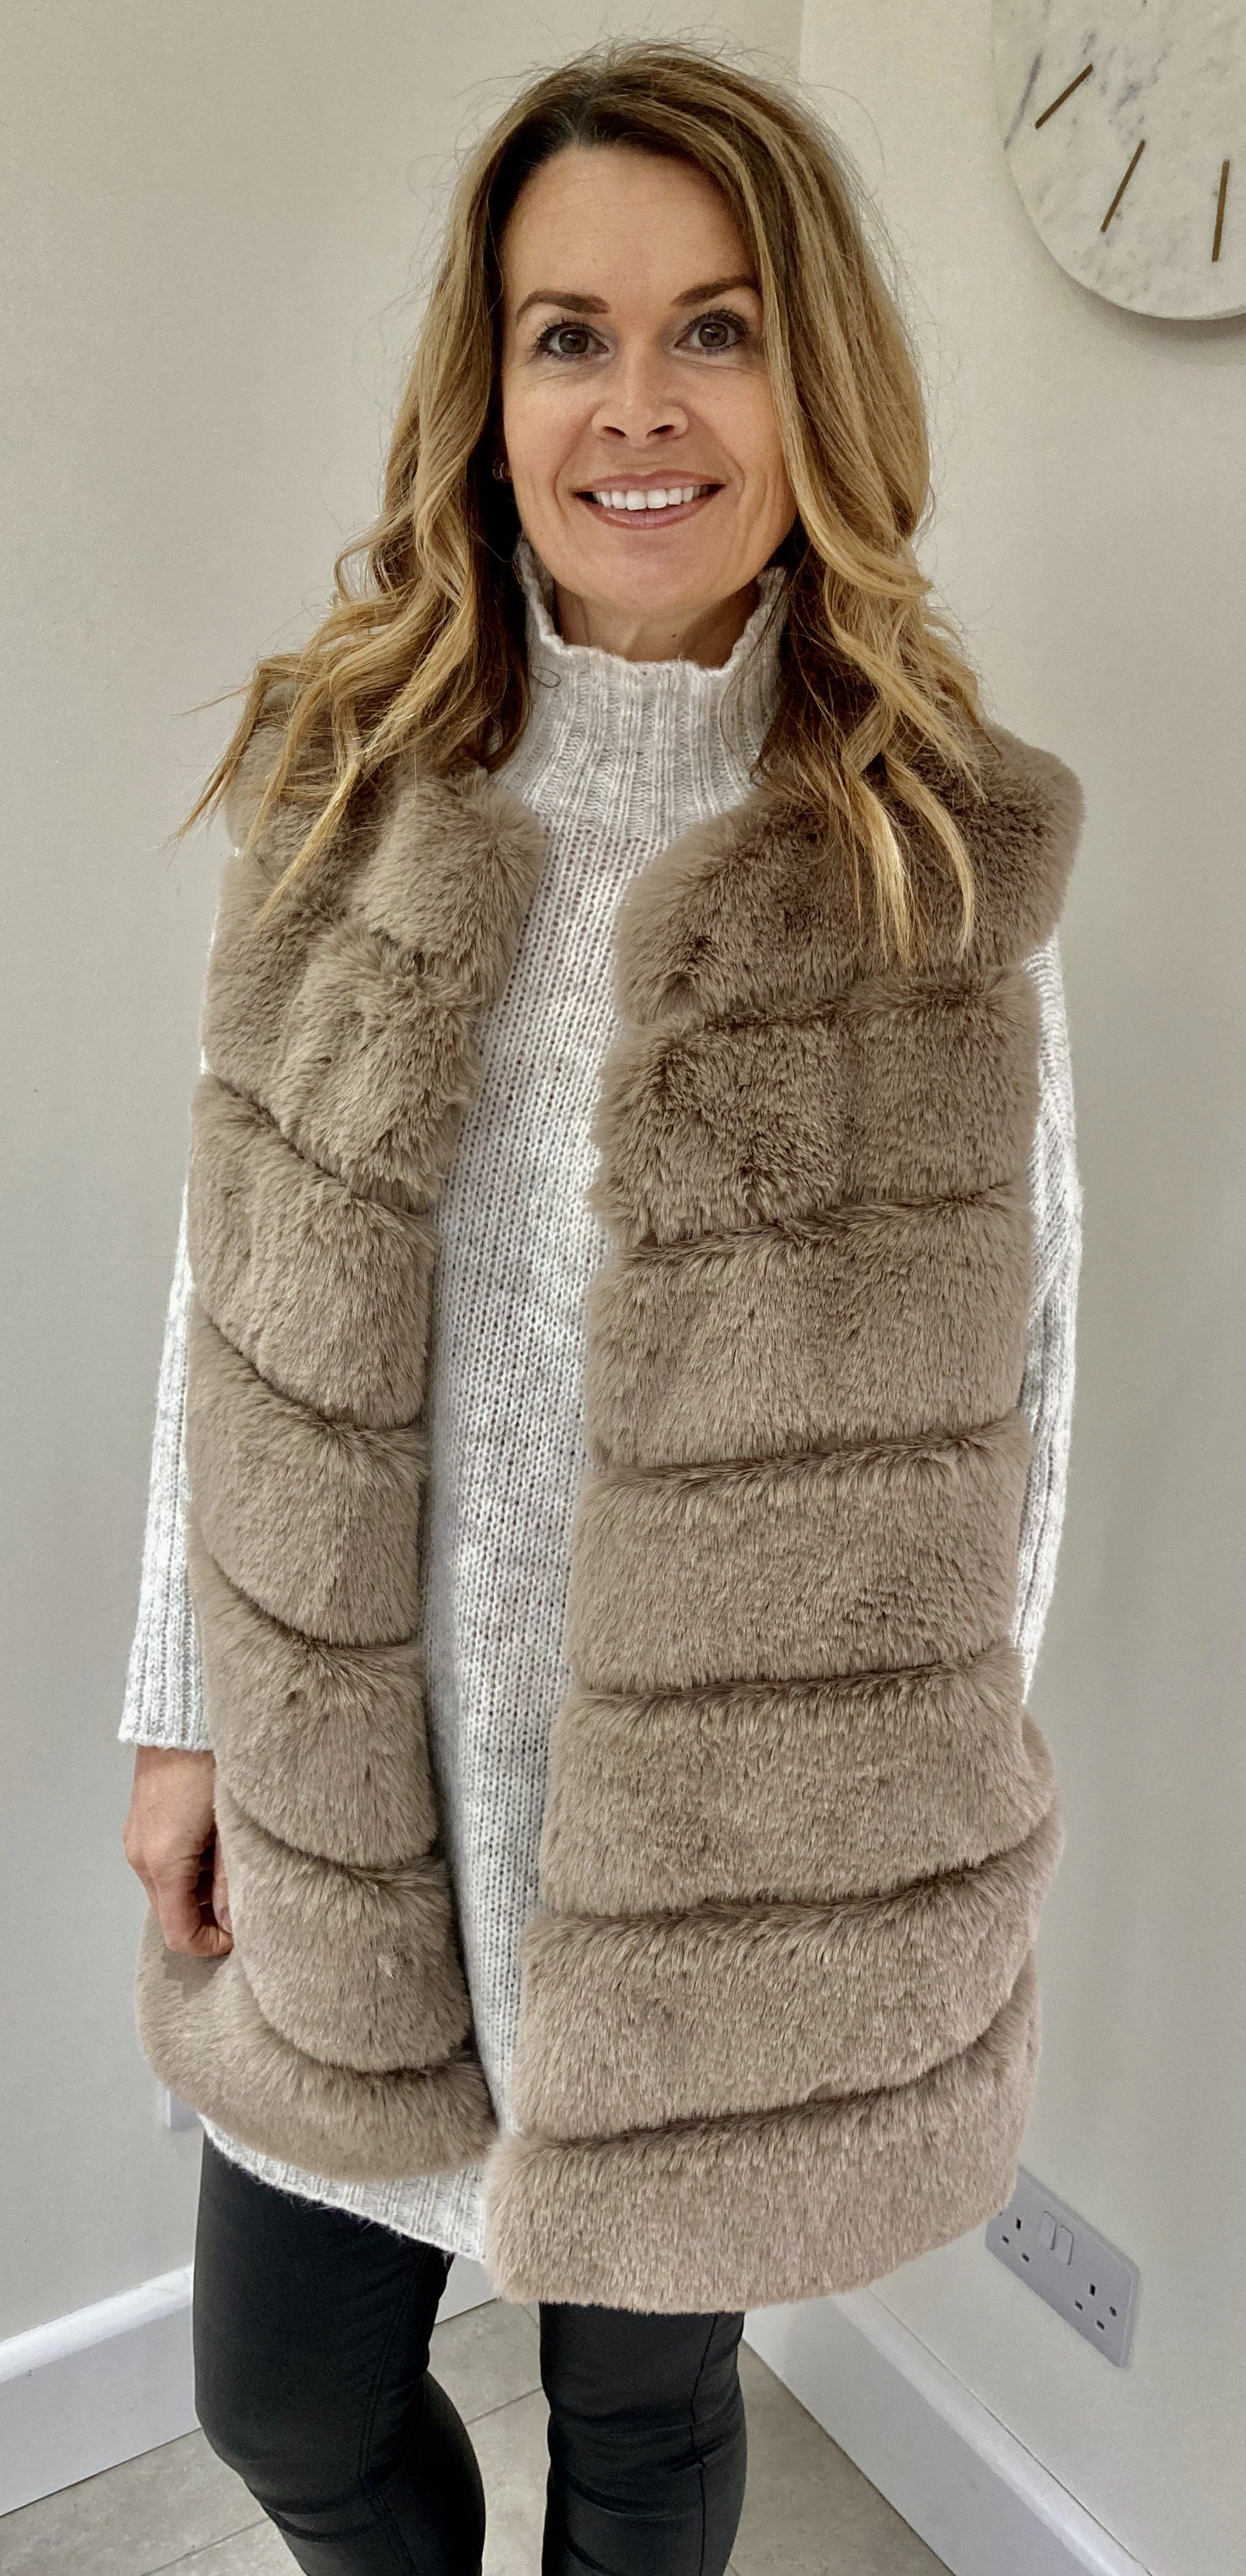 Faux fur gilet with pockets Beige - One